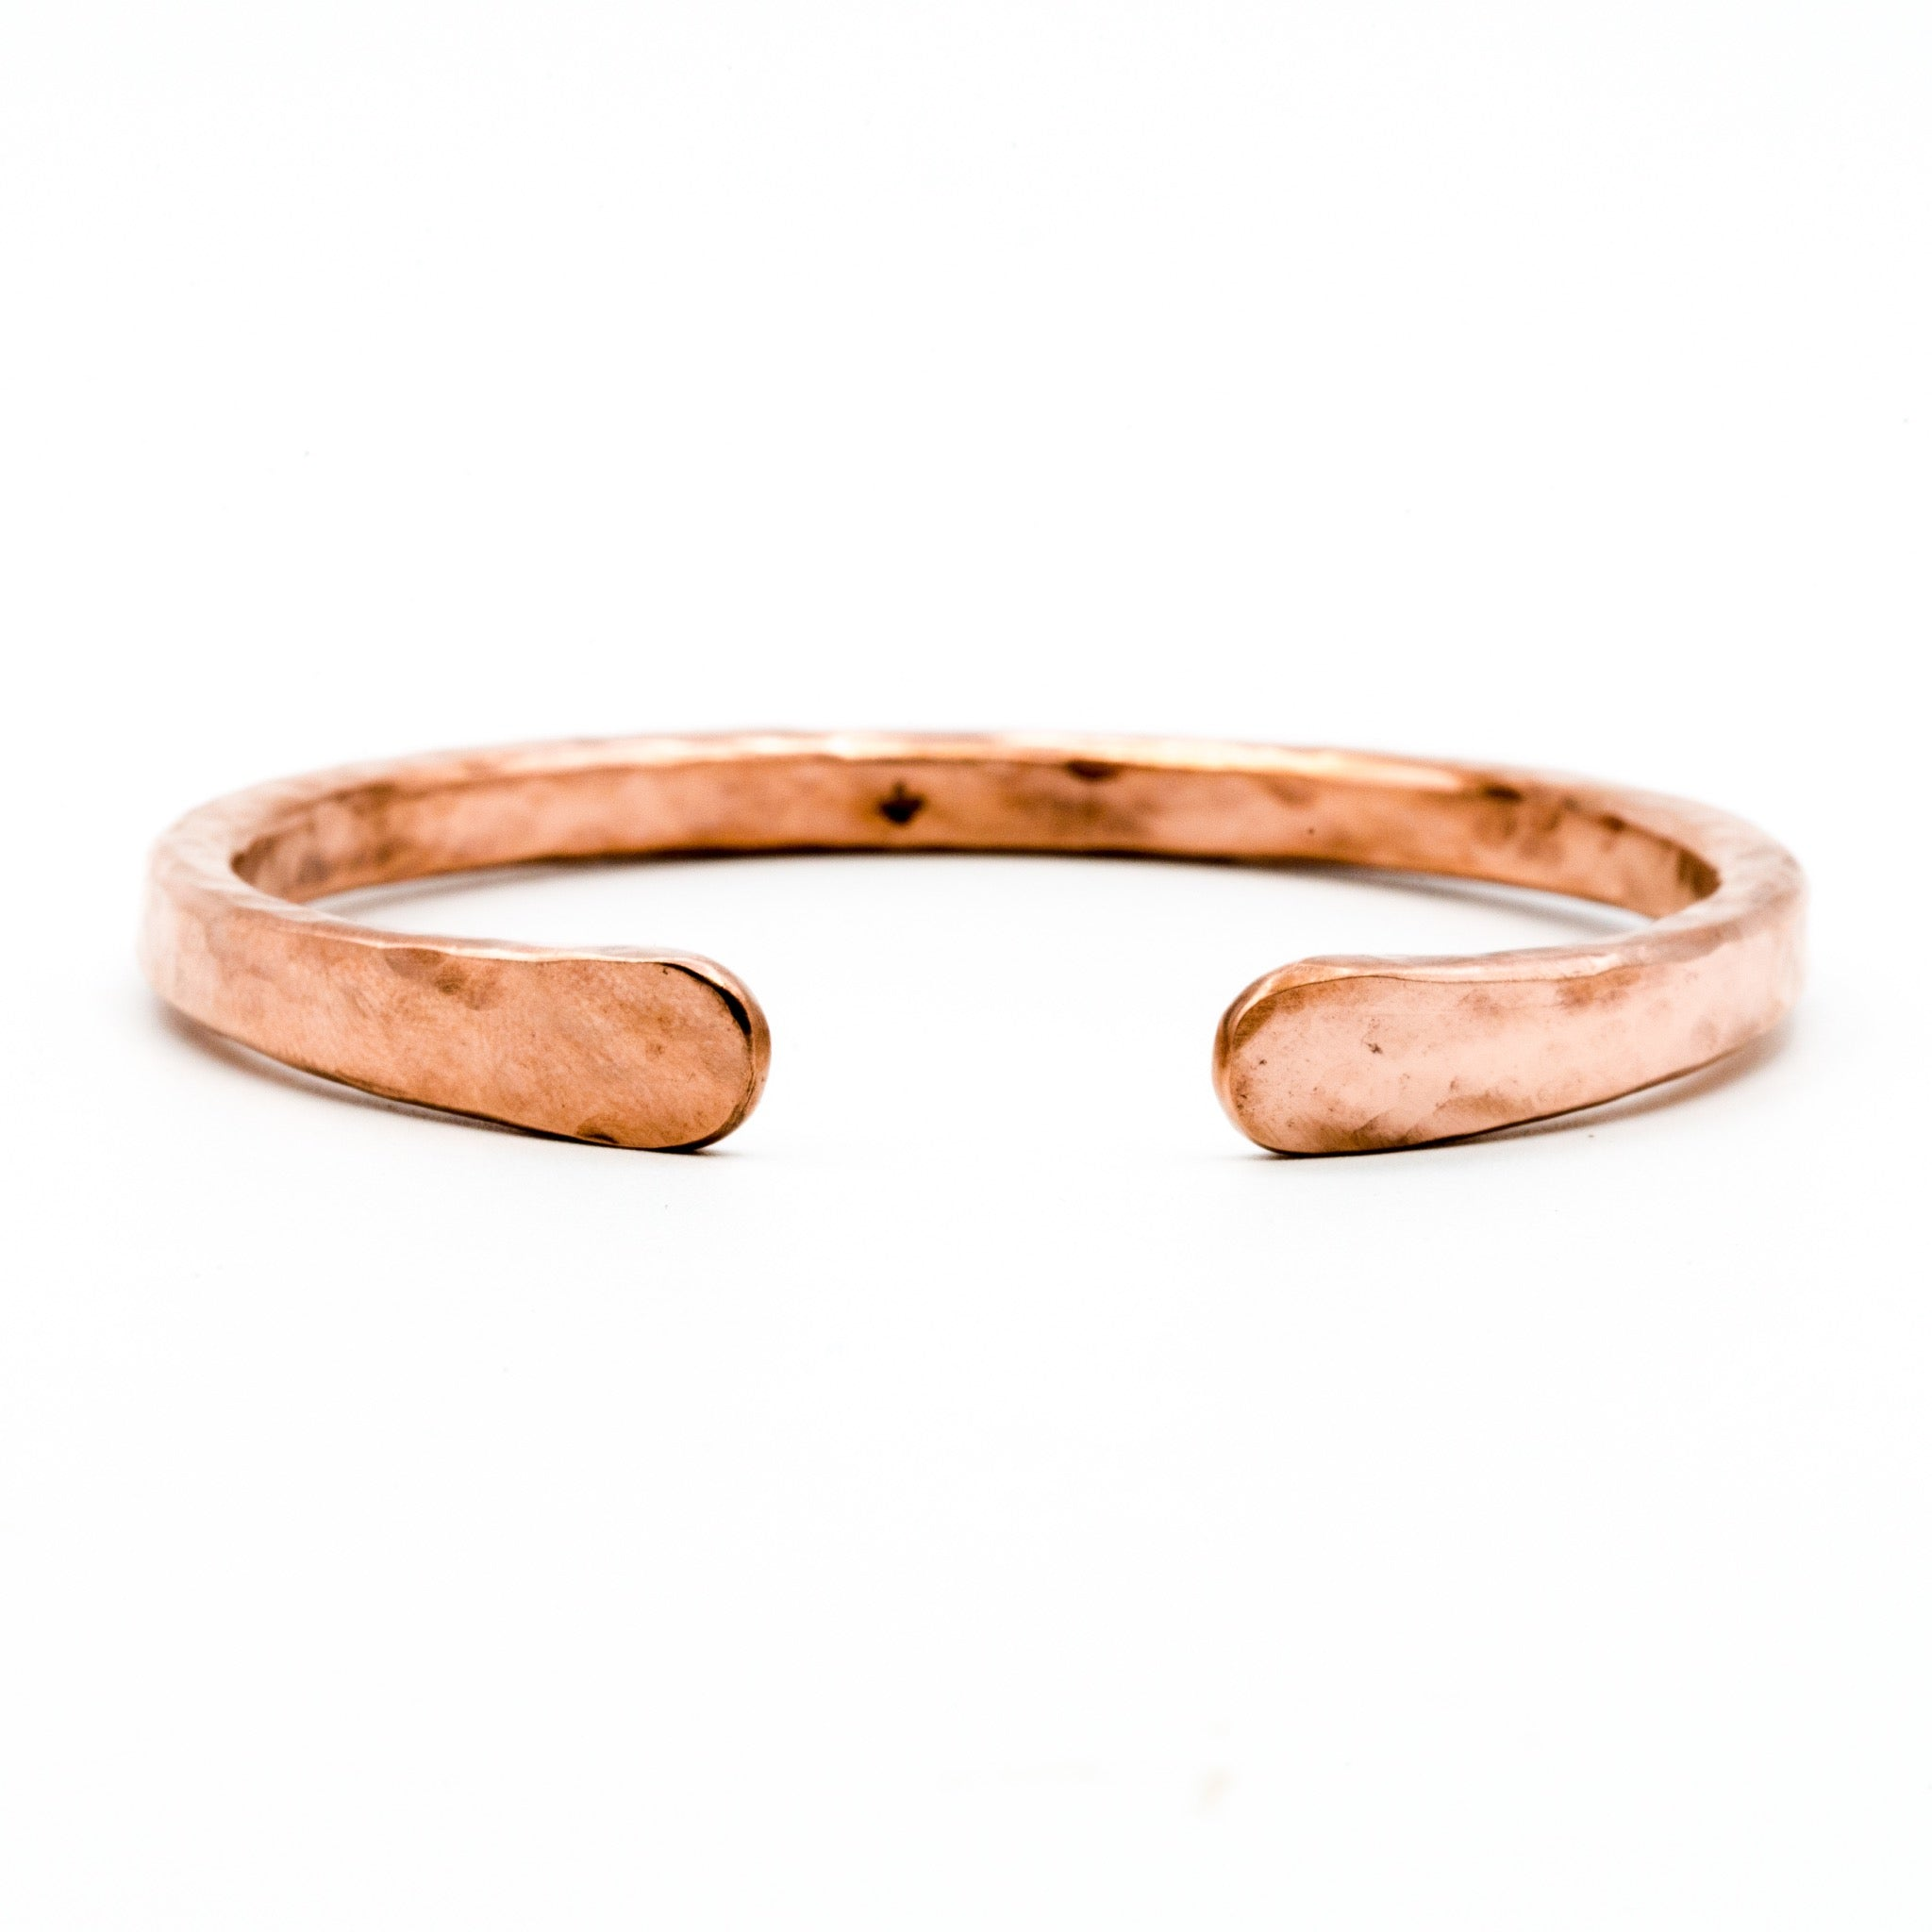 copper hand forged heavy gauge cuff on white background